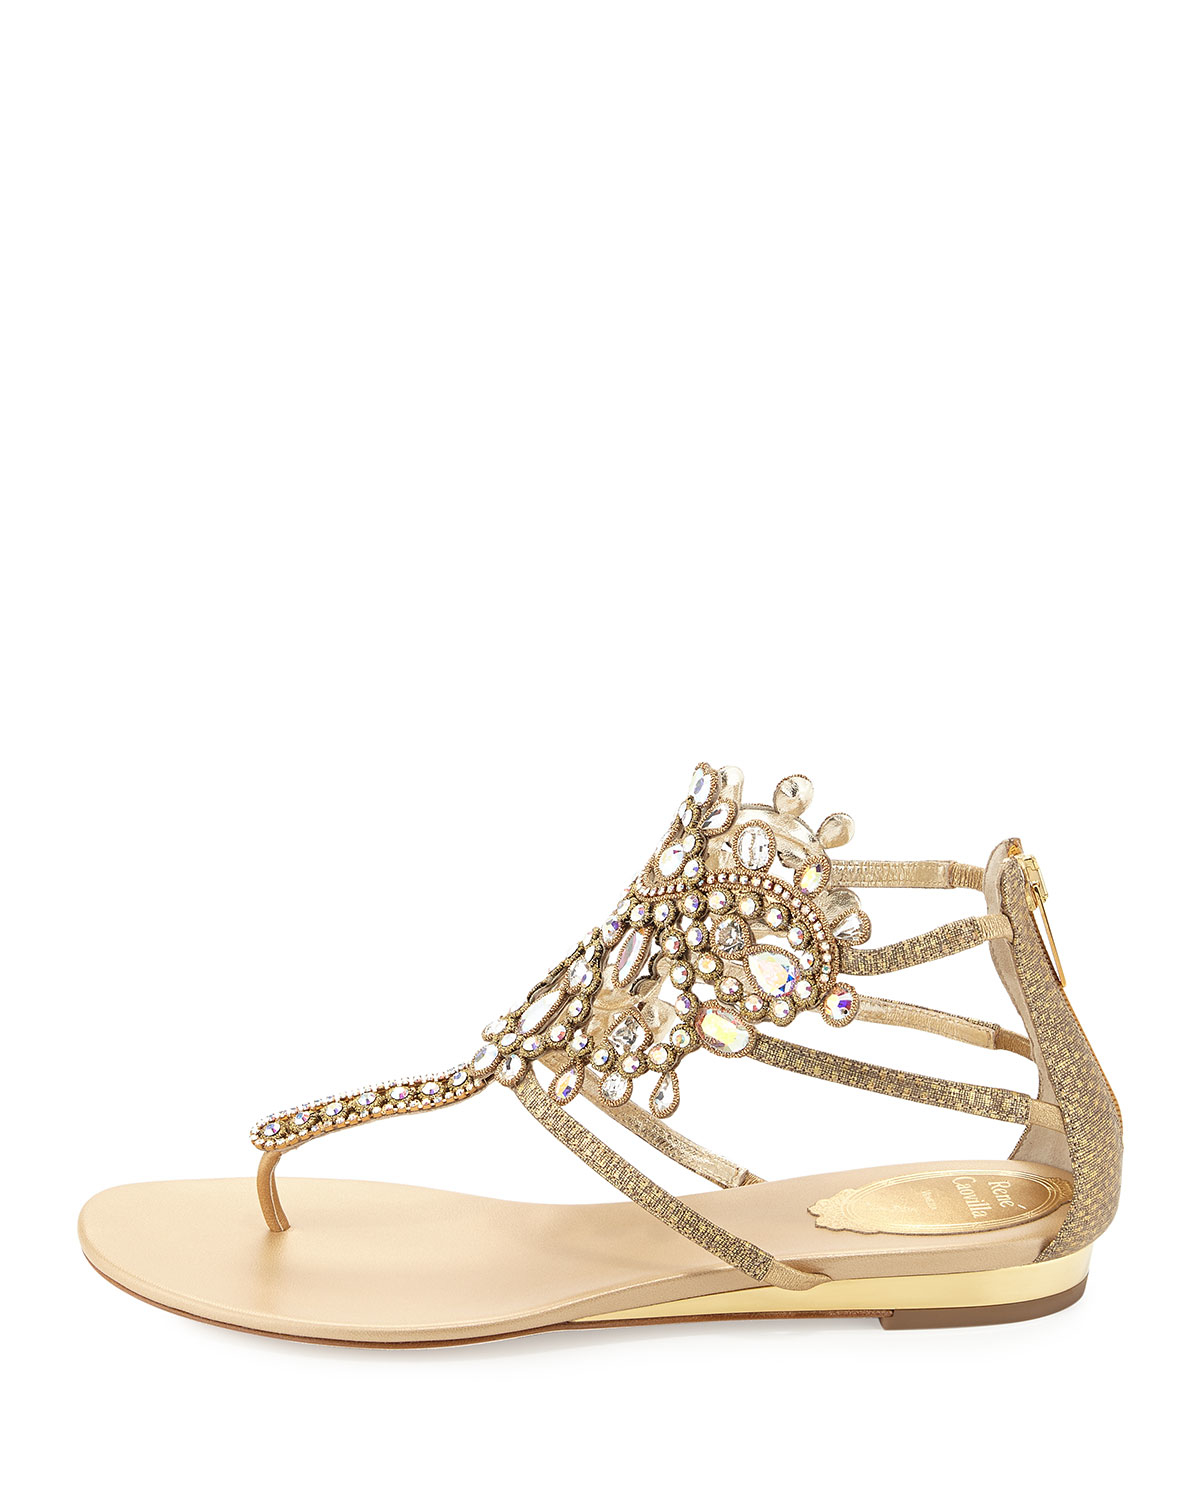 a09dace7f Rene Caovilla Crystal-Embellished Leather Sandals in Metallic - Lyst